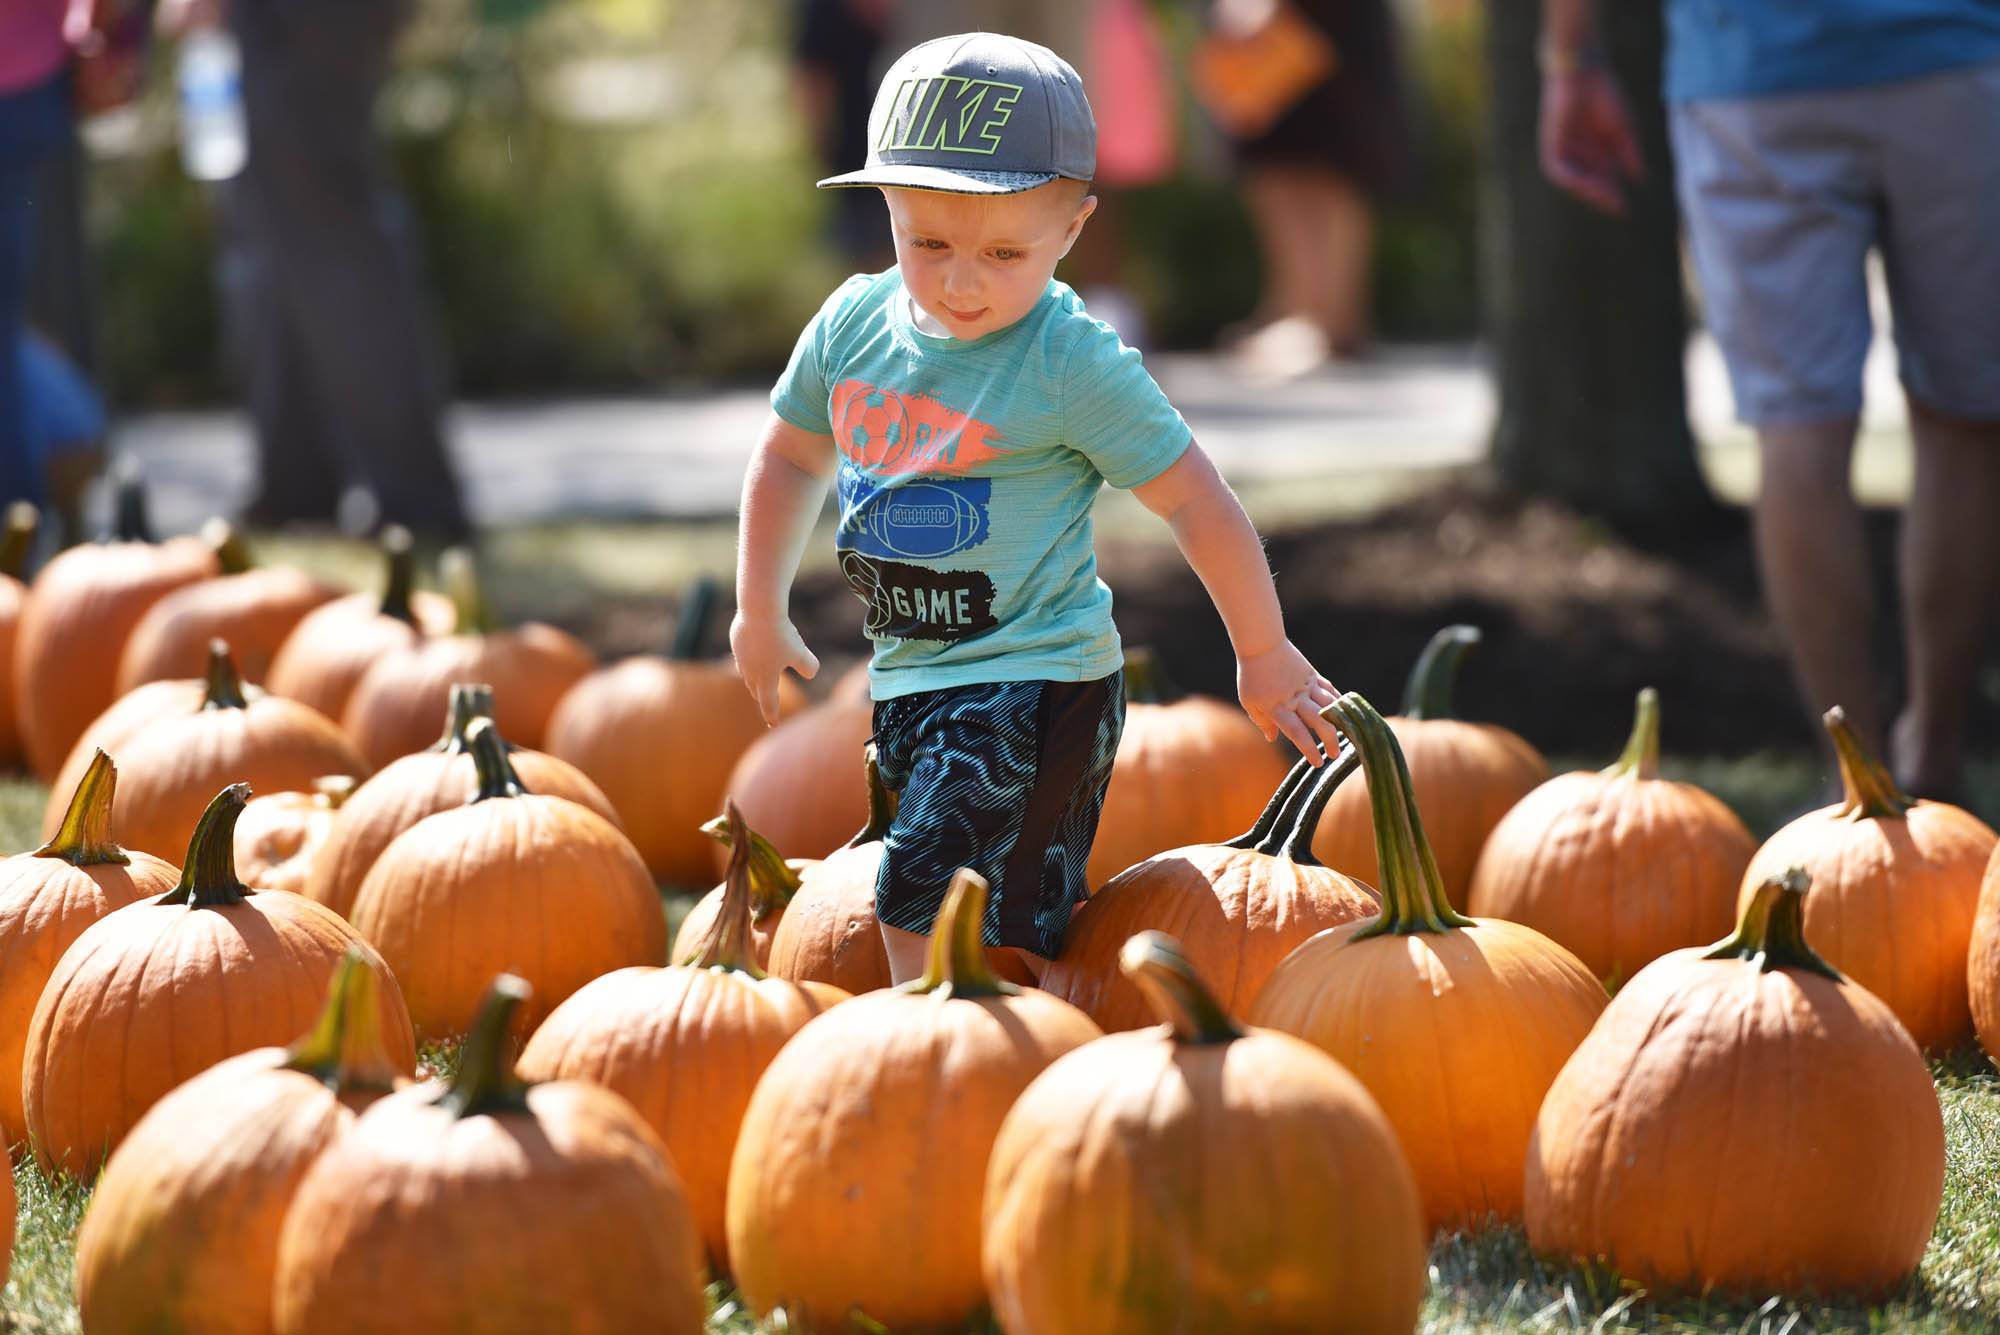 Grayson Goudzwaard, 2, goes in search of the best pumpkin Saturday at the Autumn Fair at Peck Farm Park in Geneva. He was with his mother Amanda from Naperville.